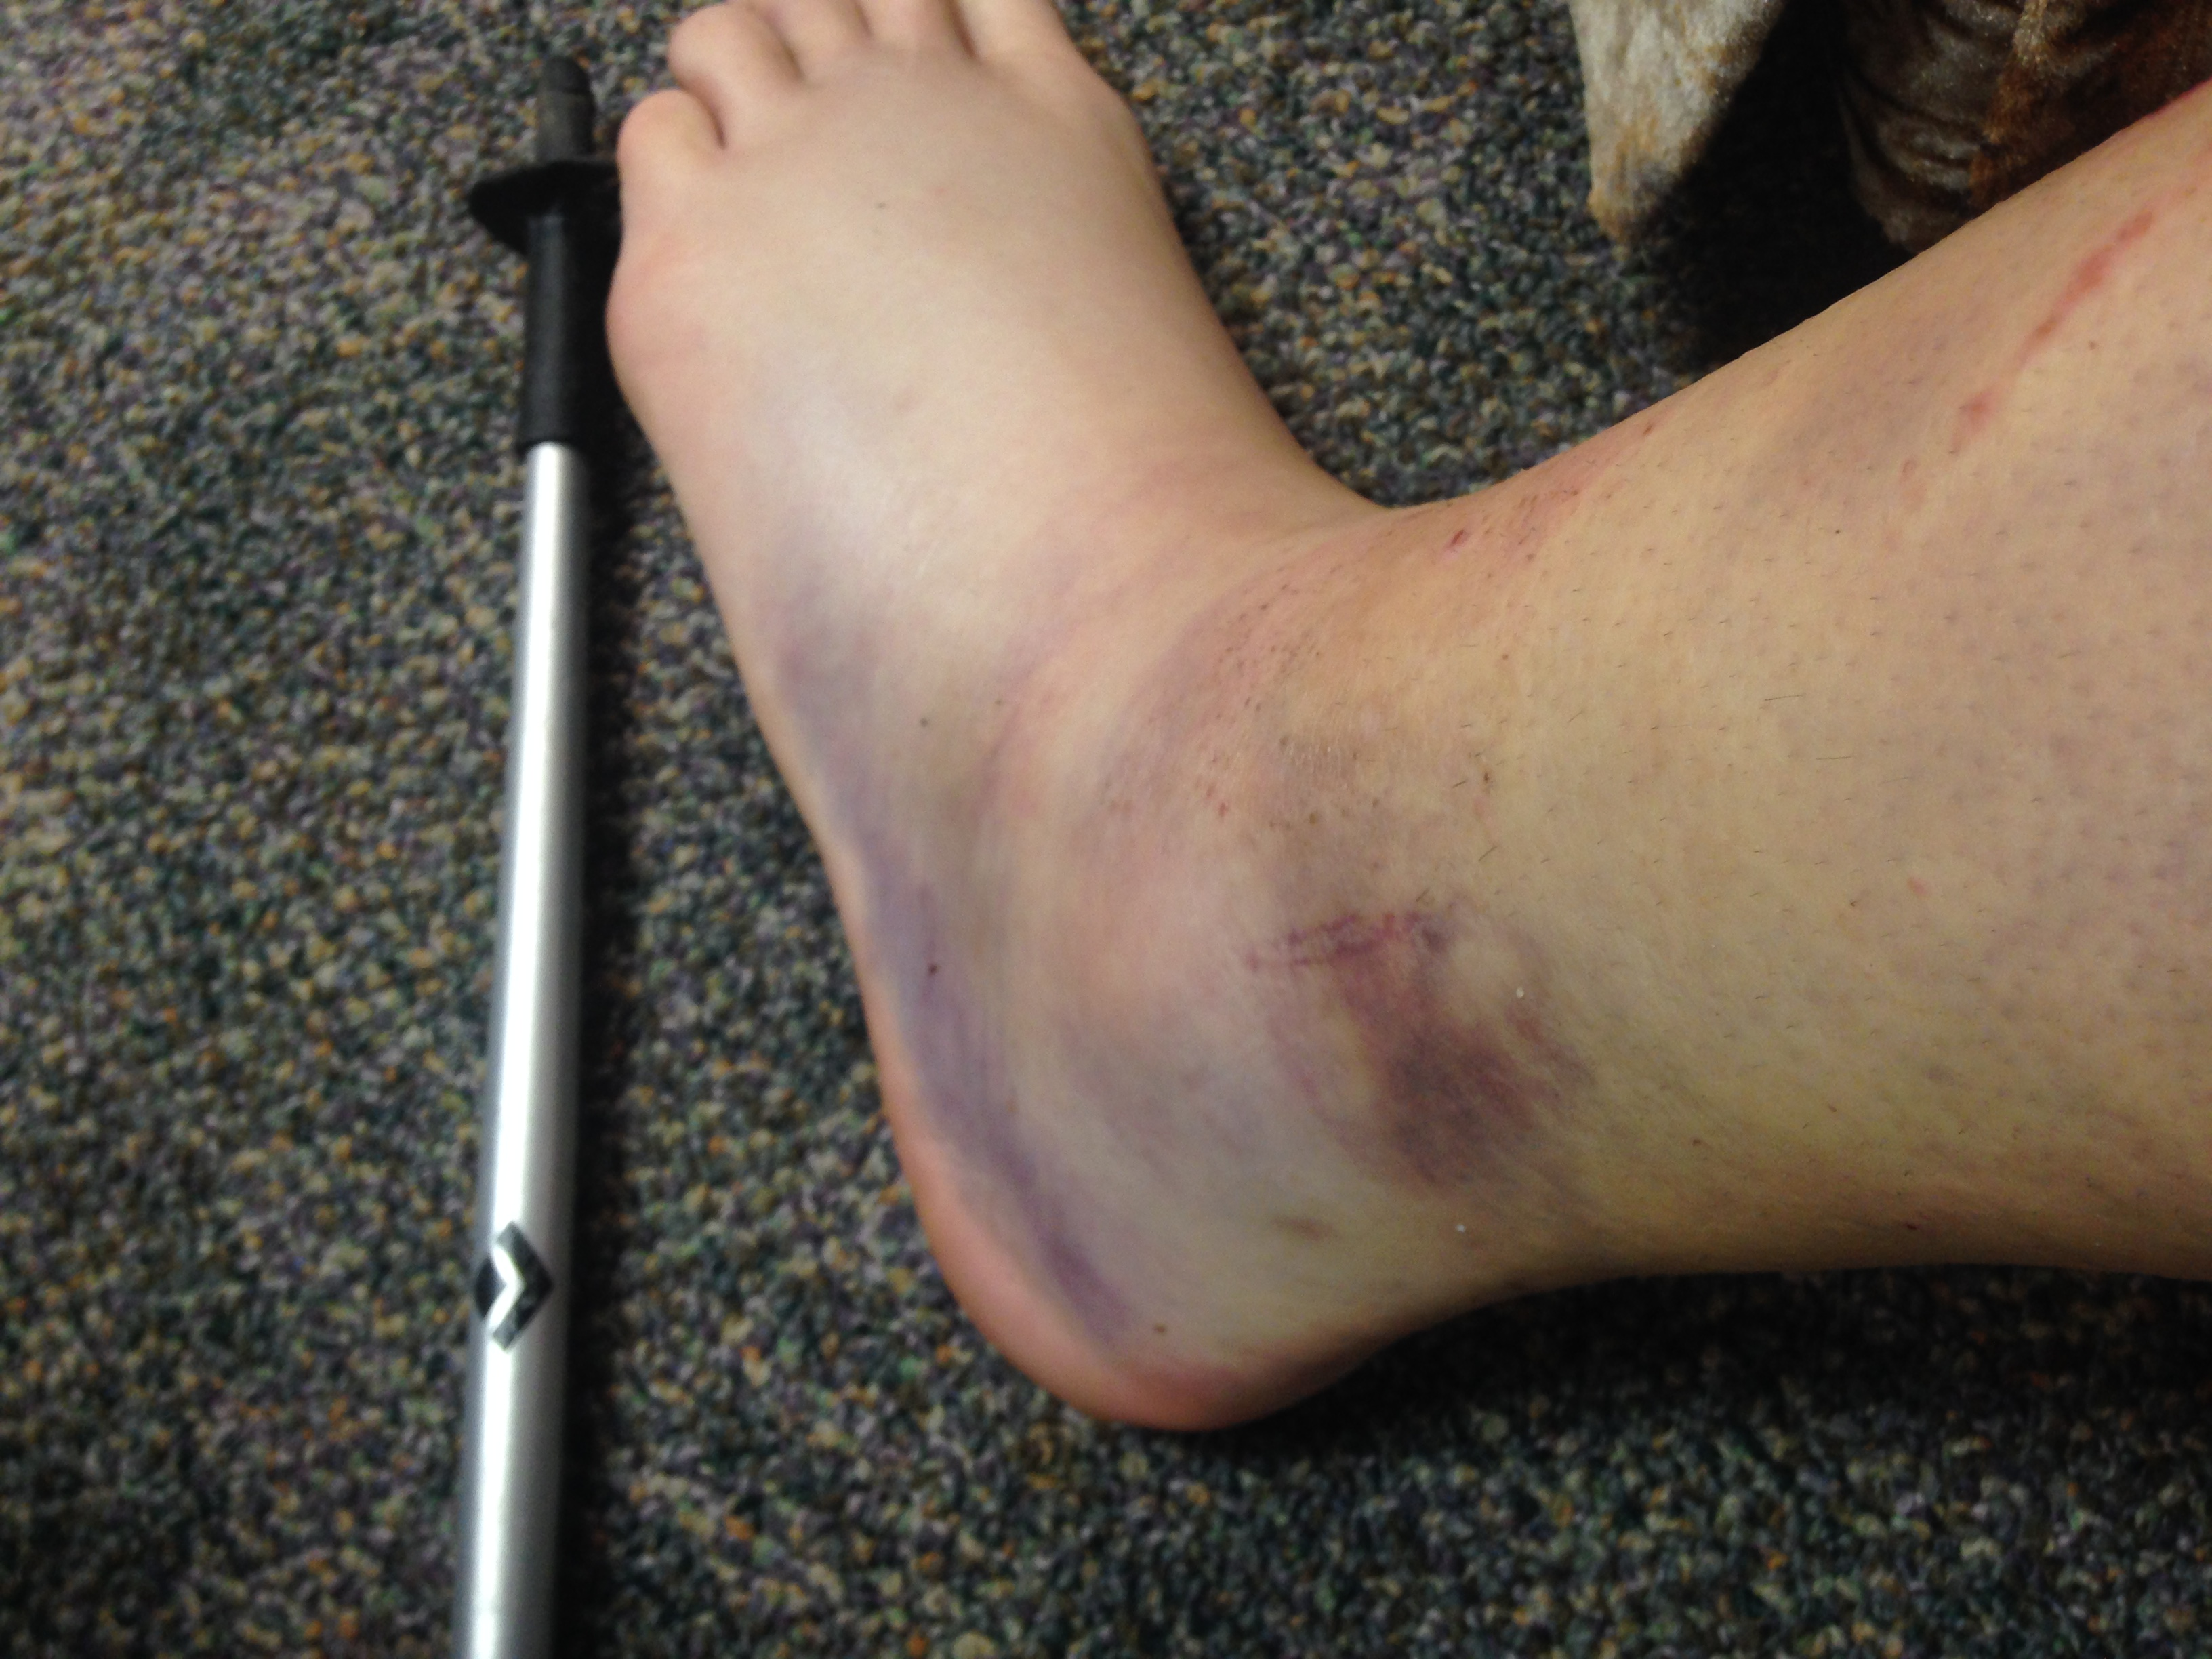 Look at that monster. The bruising goes around the whole foot and halfway up the back of my calf.